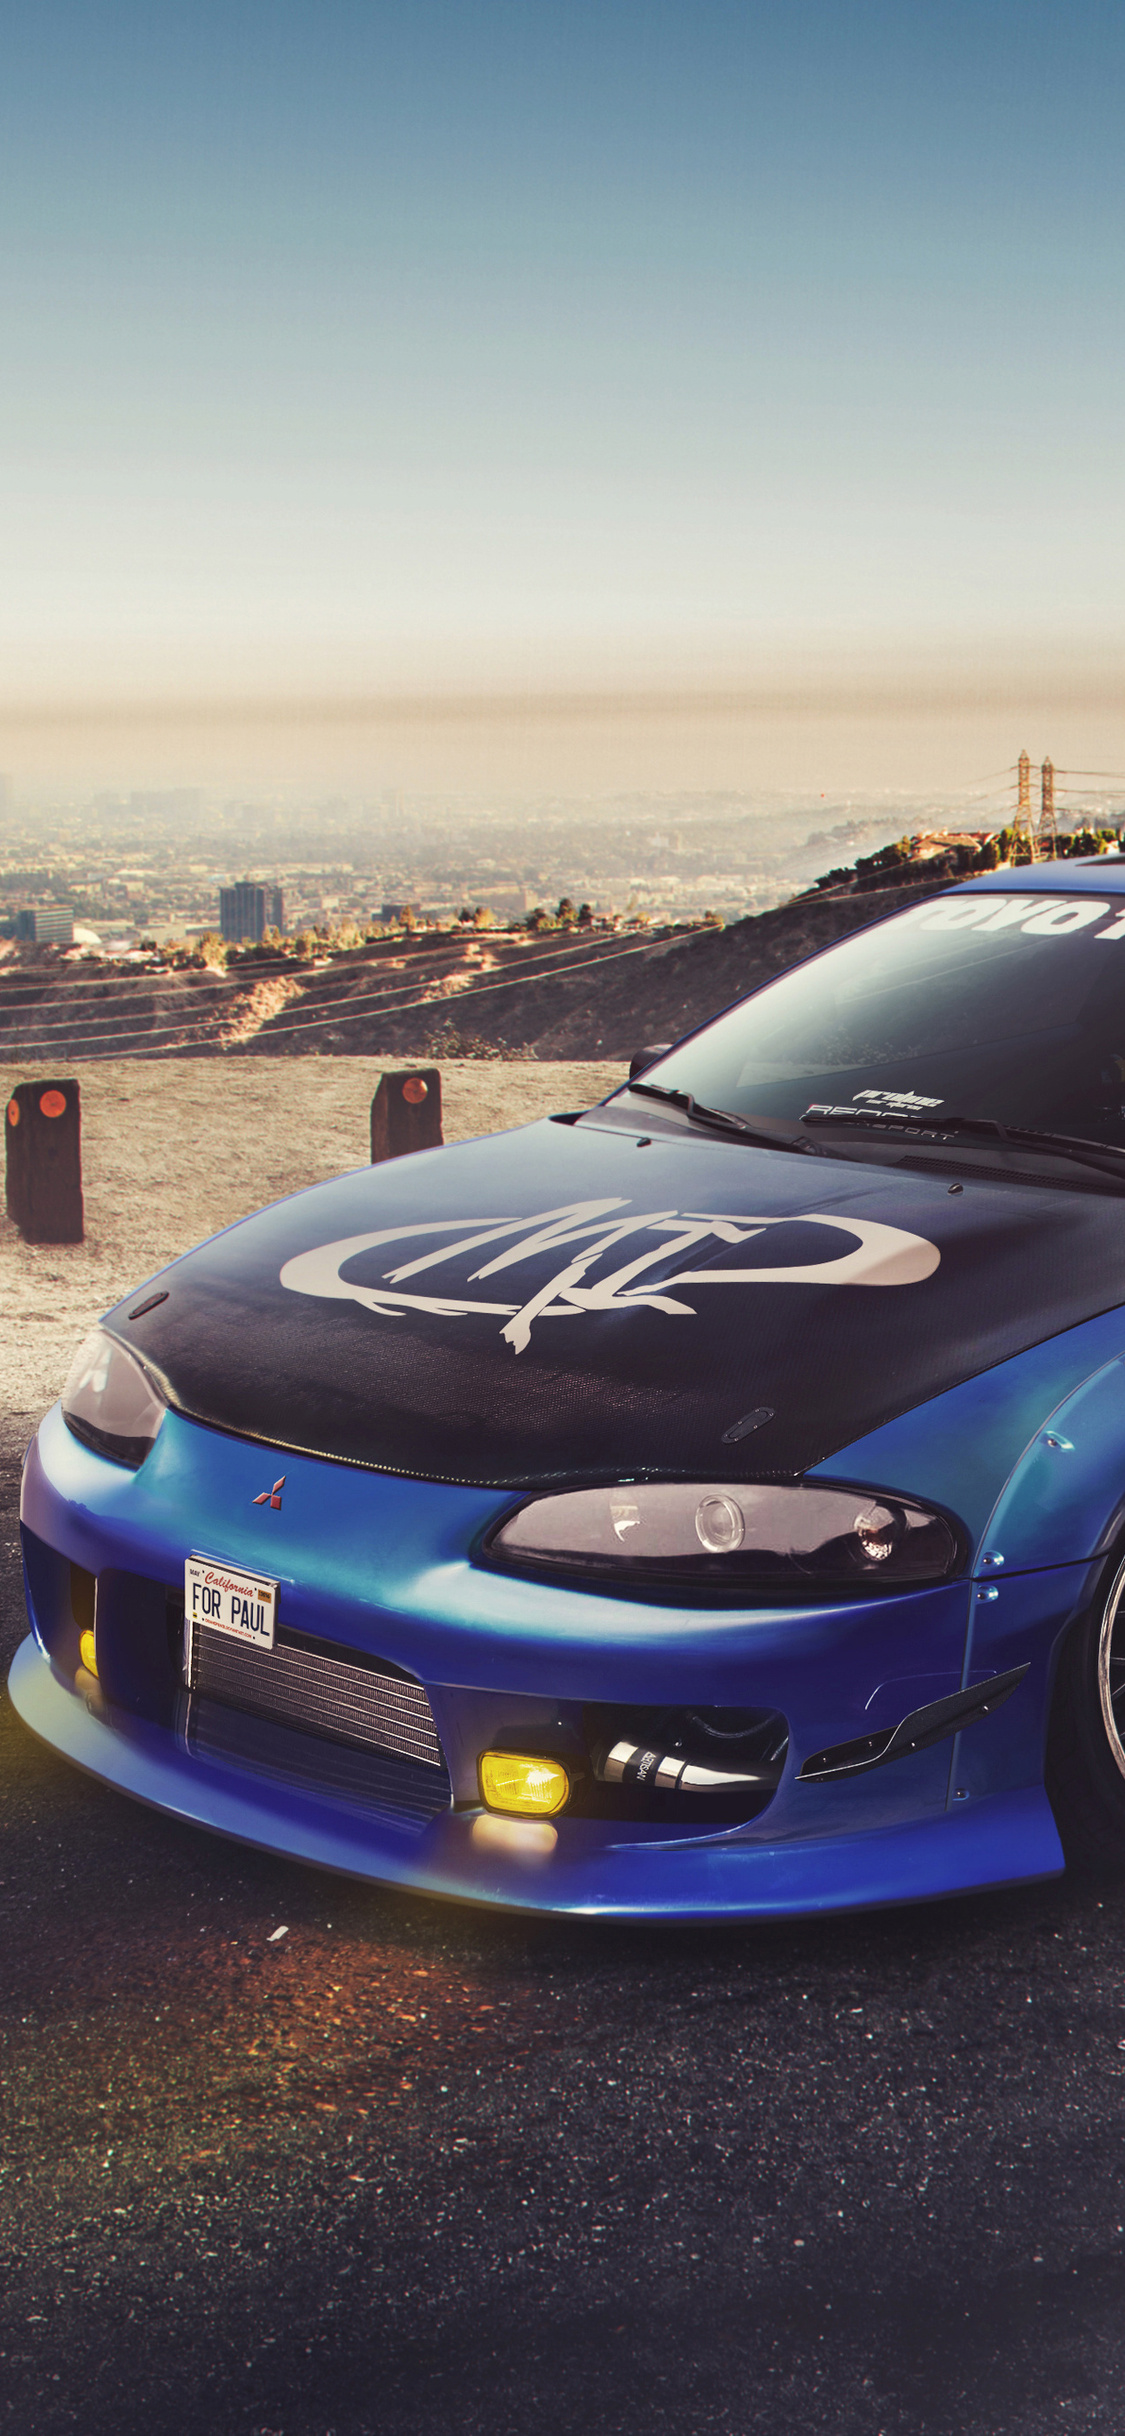 1125x2436 Mitsubishi Eclipse Tribute For Paul Walker Iphone Xs